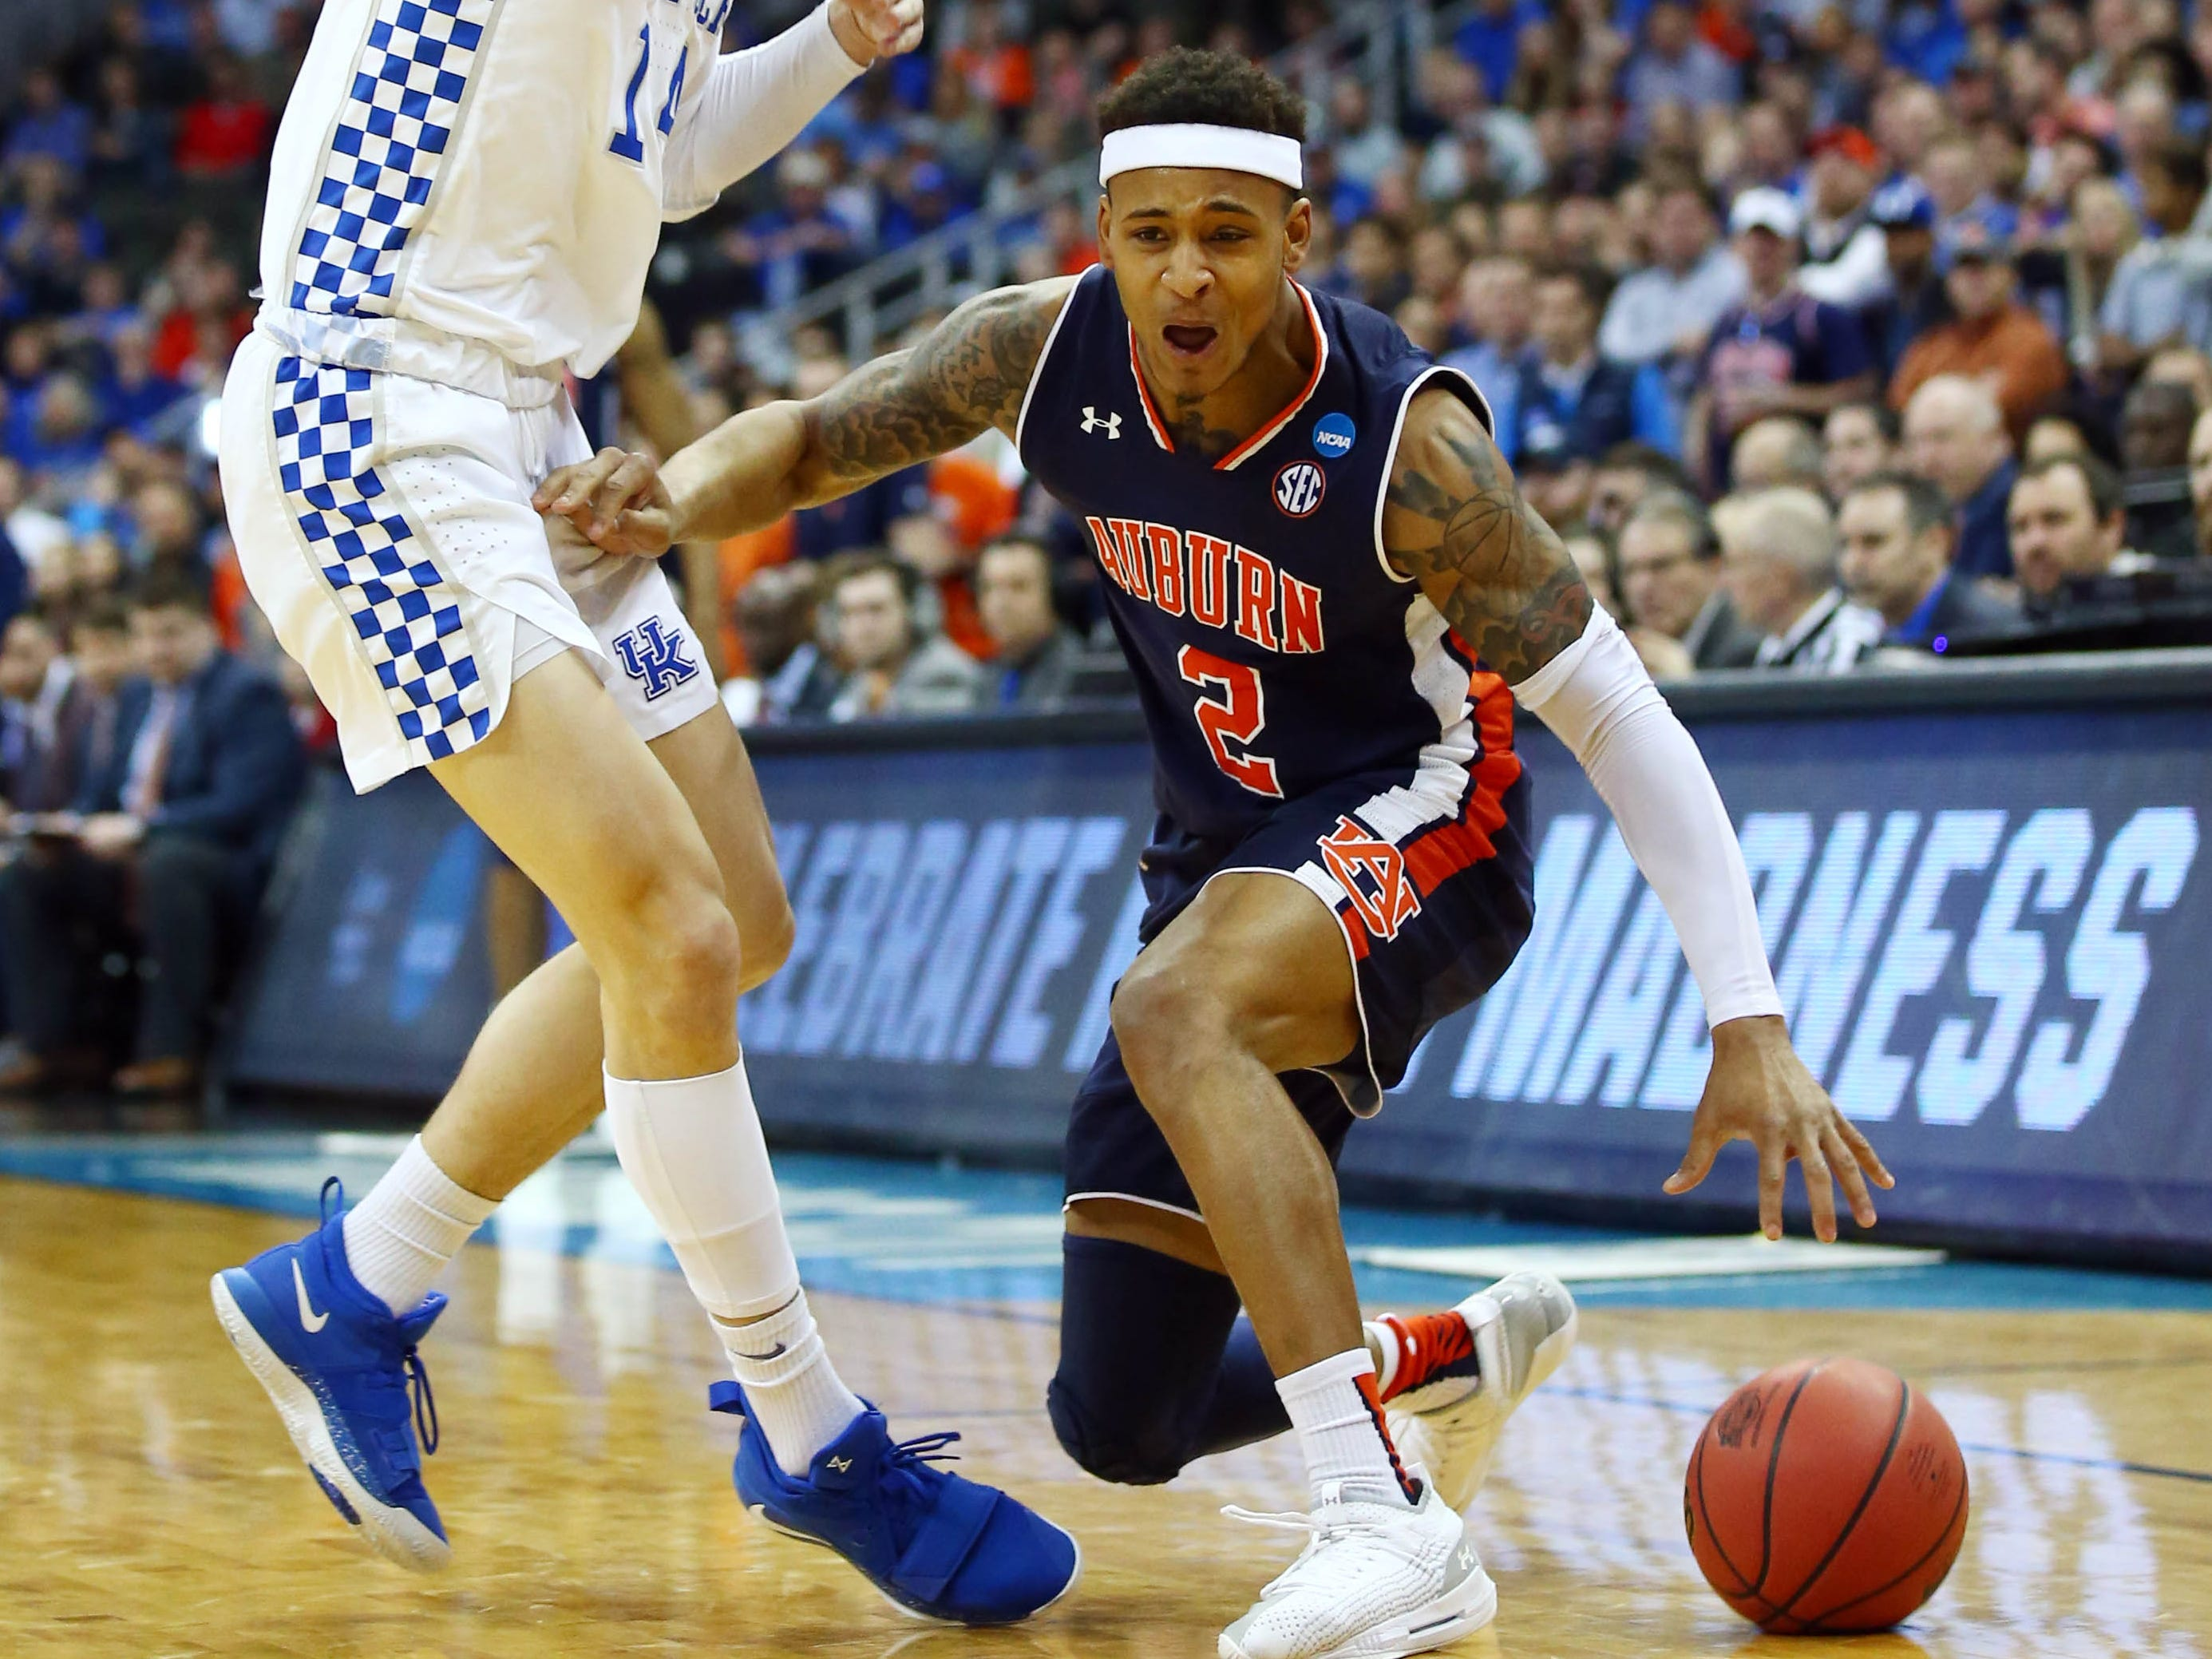 Mar 31, 2019; Kansas City, MO, United States; Auburn Tigers guard Bryce Brown (2) dribbles the ball against Kentucky Wildcats guard Tyler Herro (14) during the first half in the championship game of the midwest regional of the 2019 NCAA Tournament at Sprint Center. Mandatory Credit: Jay Biggerstaff-USA TODAY Sports